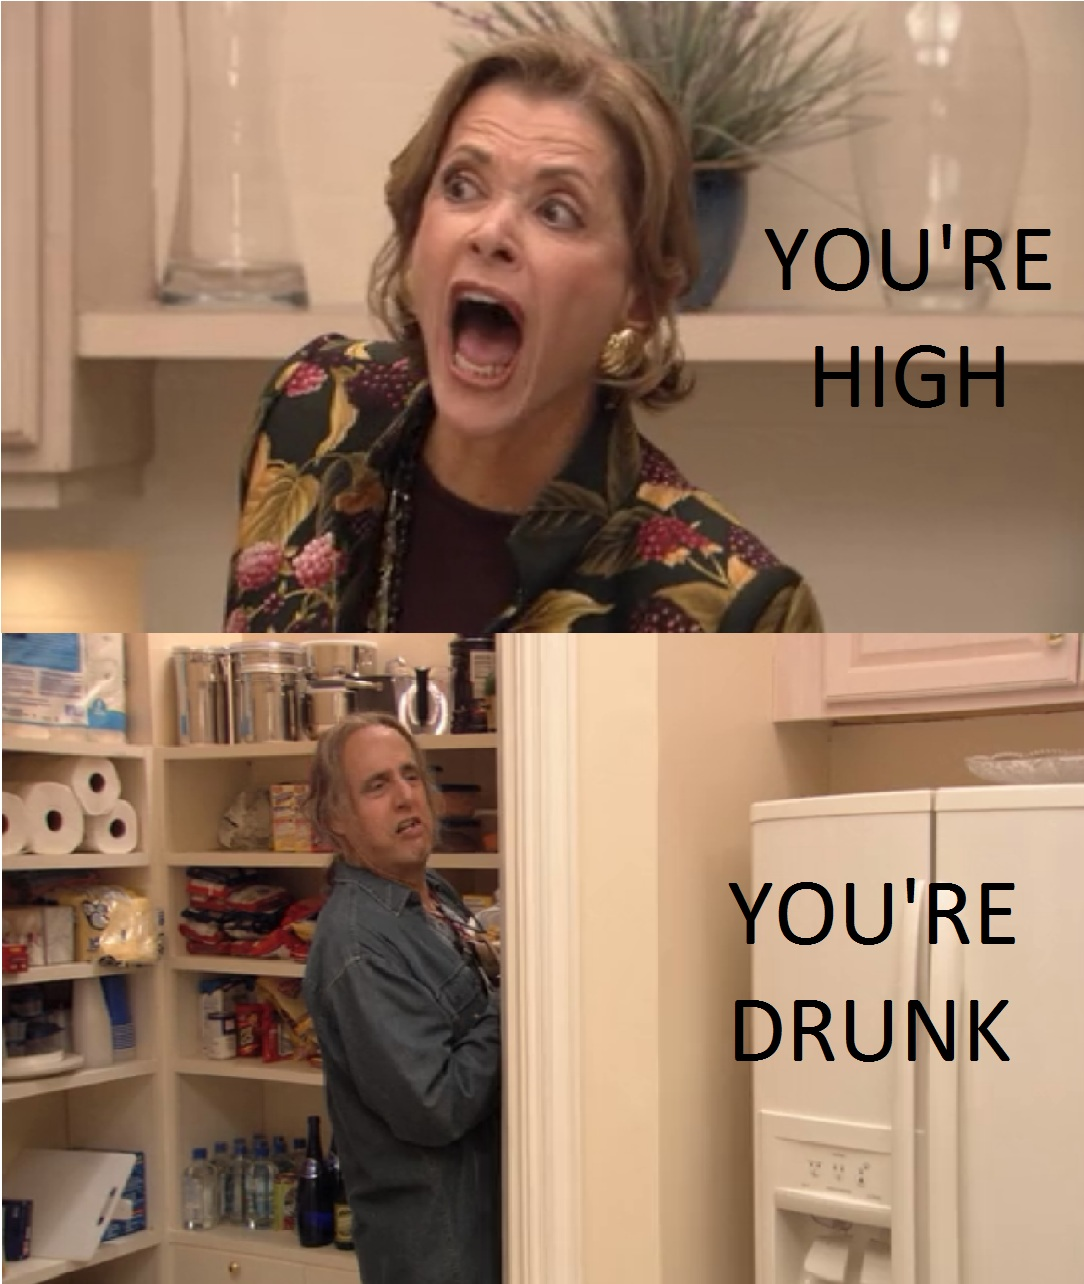 You're High - You're Drunk